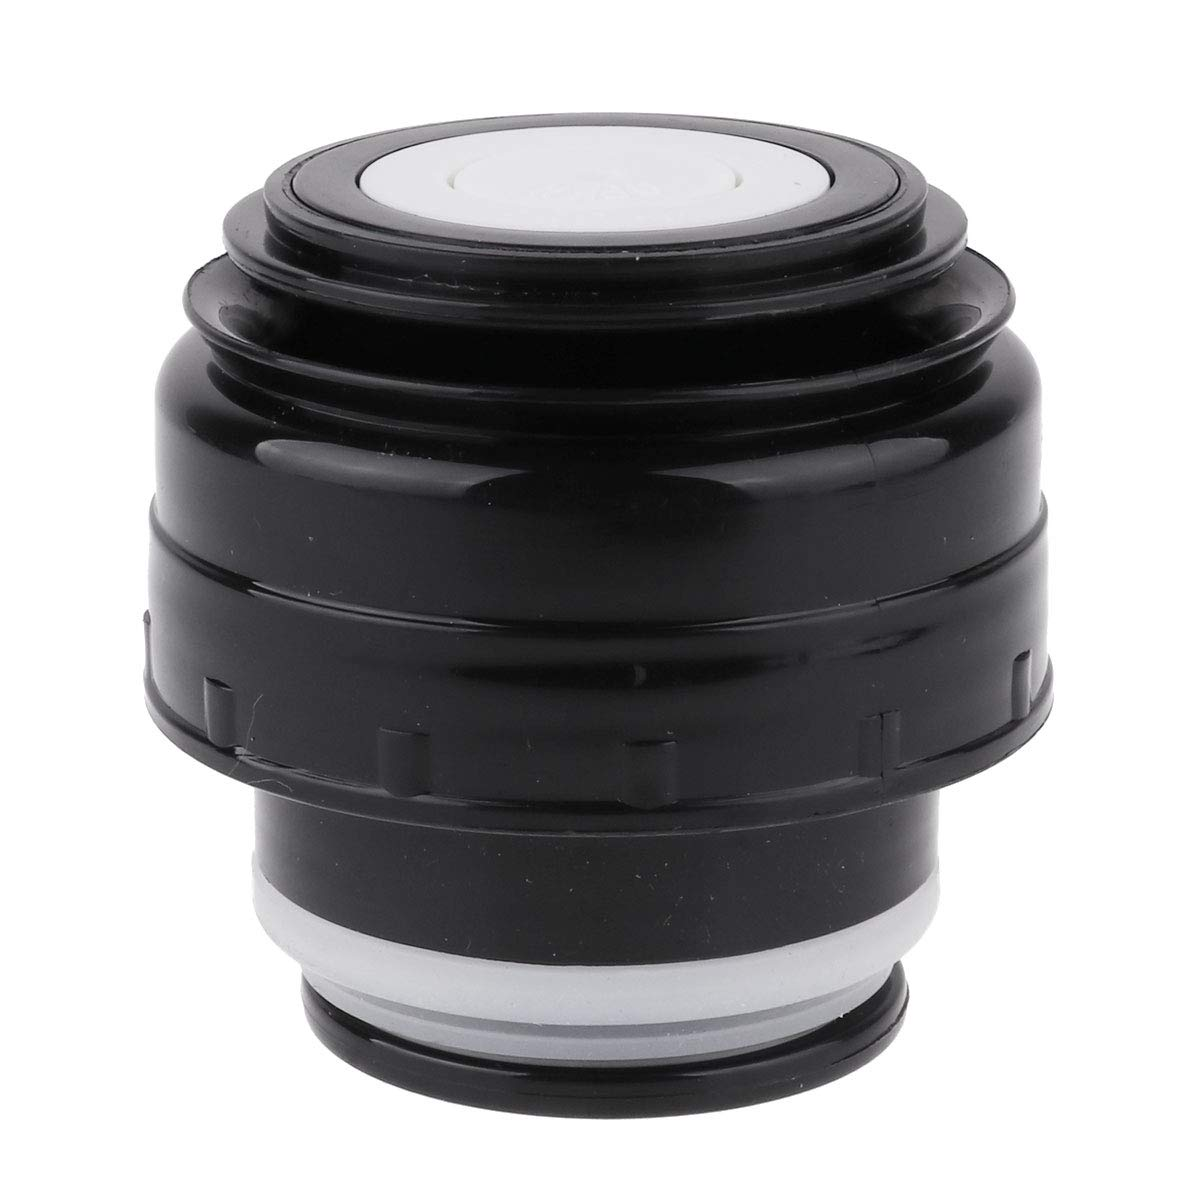 IEFIEL 5.2cm Diameter Thermos Bottle Cup Bullet Flask Covers Vacuum Insulated Travel Mug Stopper Lid Black One Size